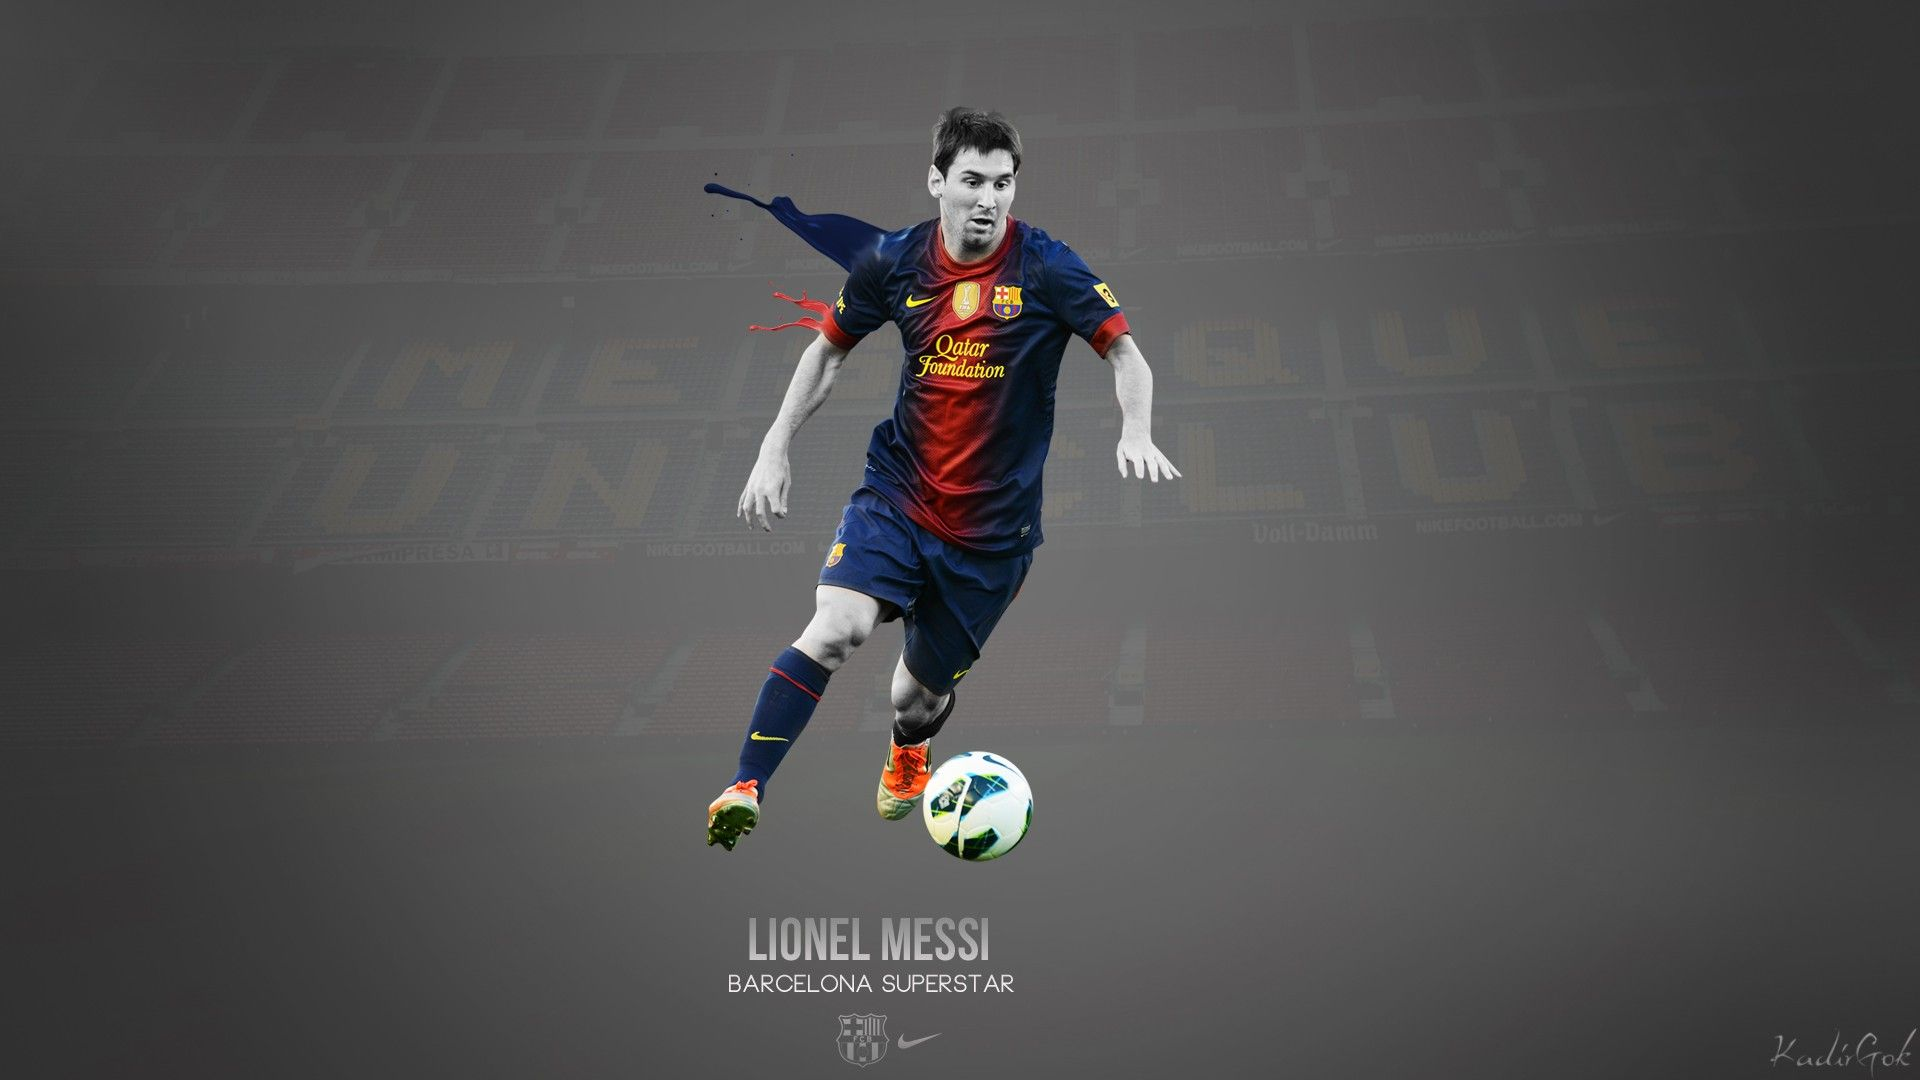 Yukutiu With Images Lionel Messi Wallpapers Lionel Messi Messi